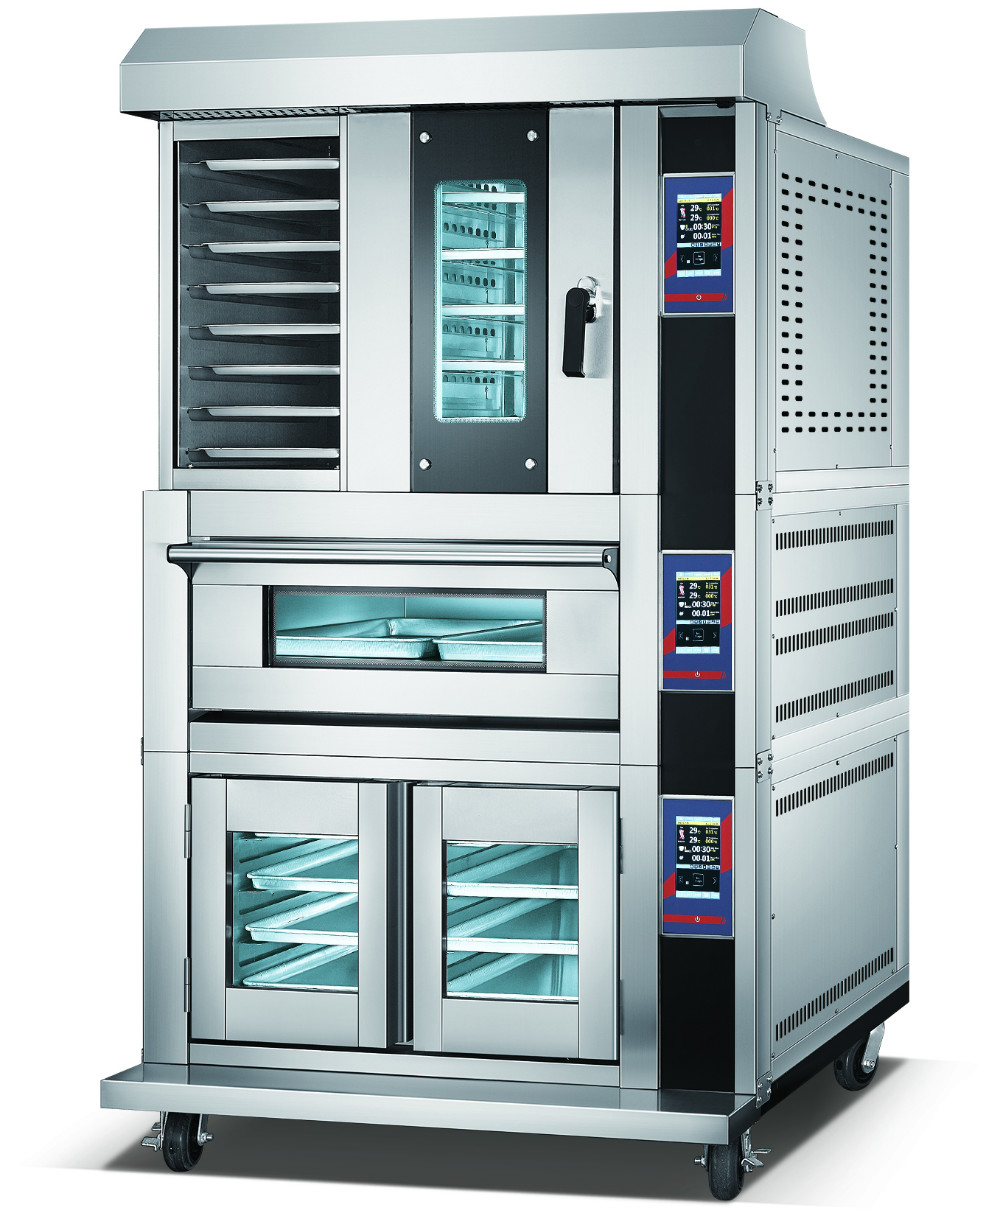 High quality industrial electric convection oven for sale